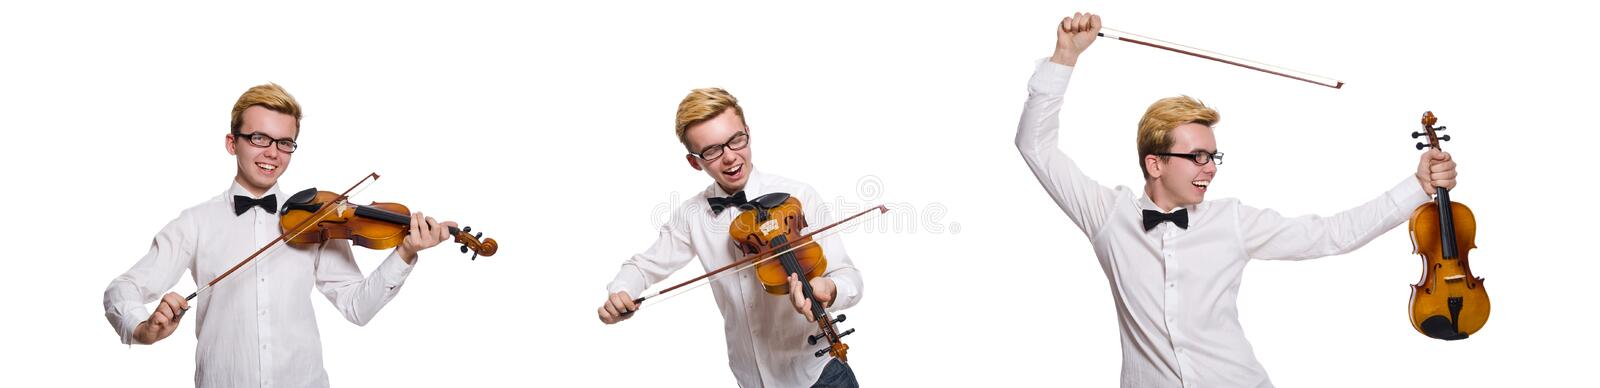 Young funny violin player isolated on white stock photography